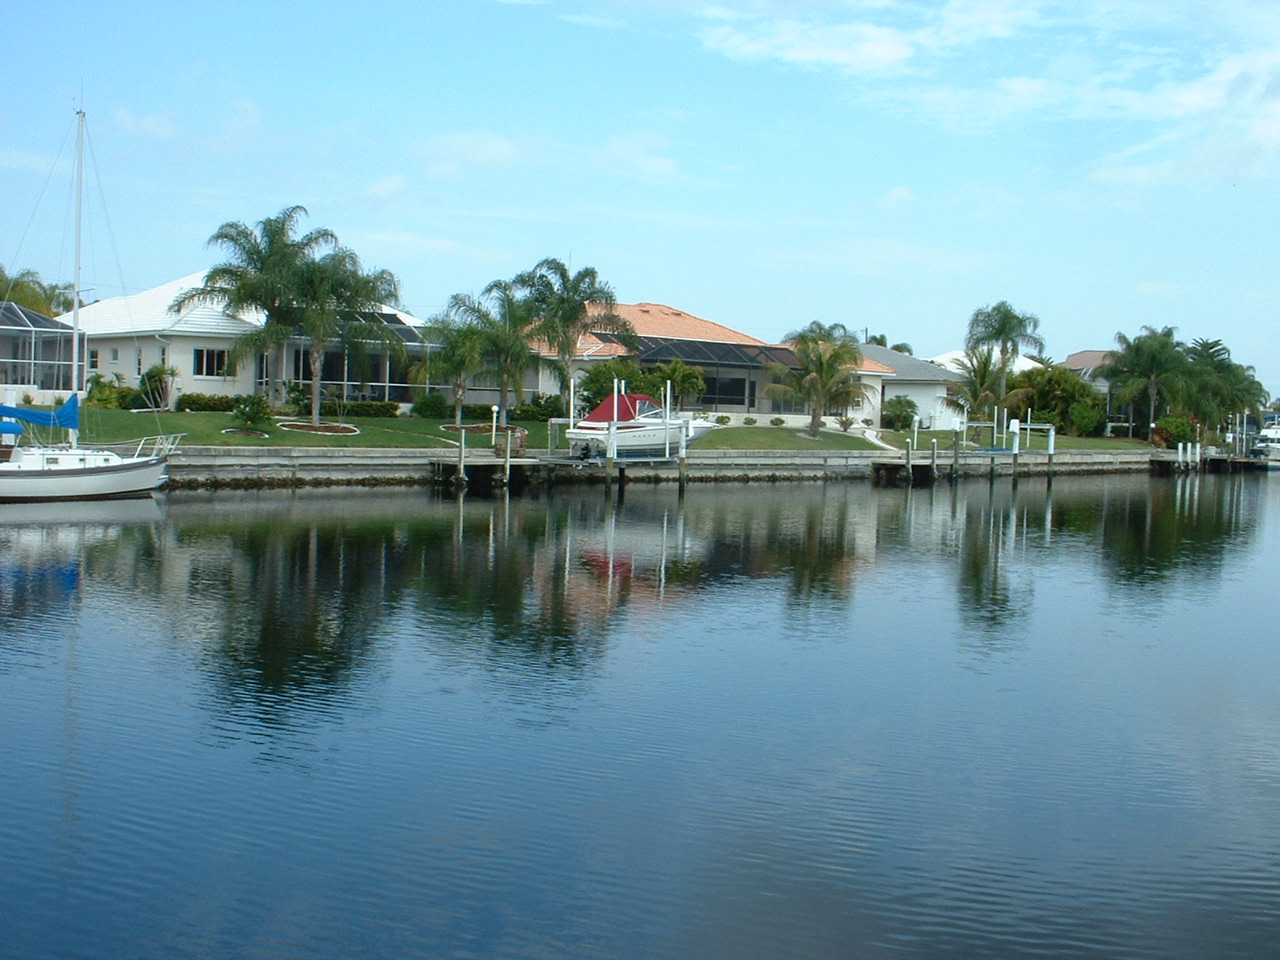 Image of canal with homes, and docked boats.